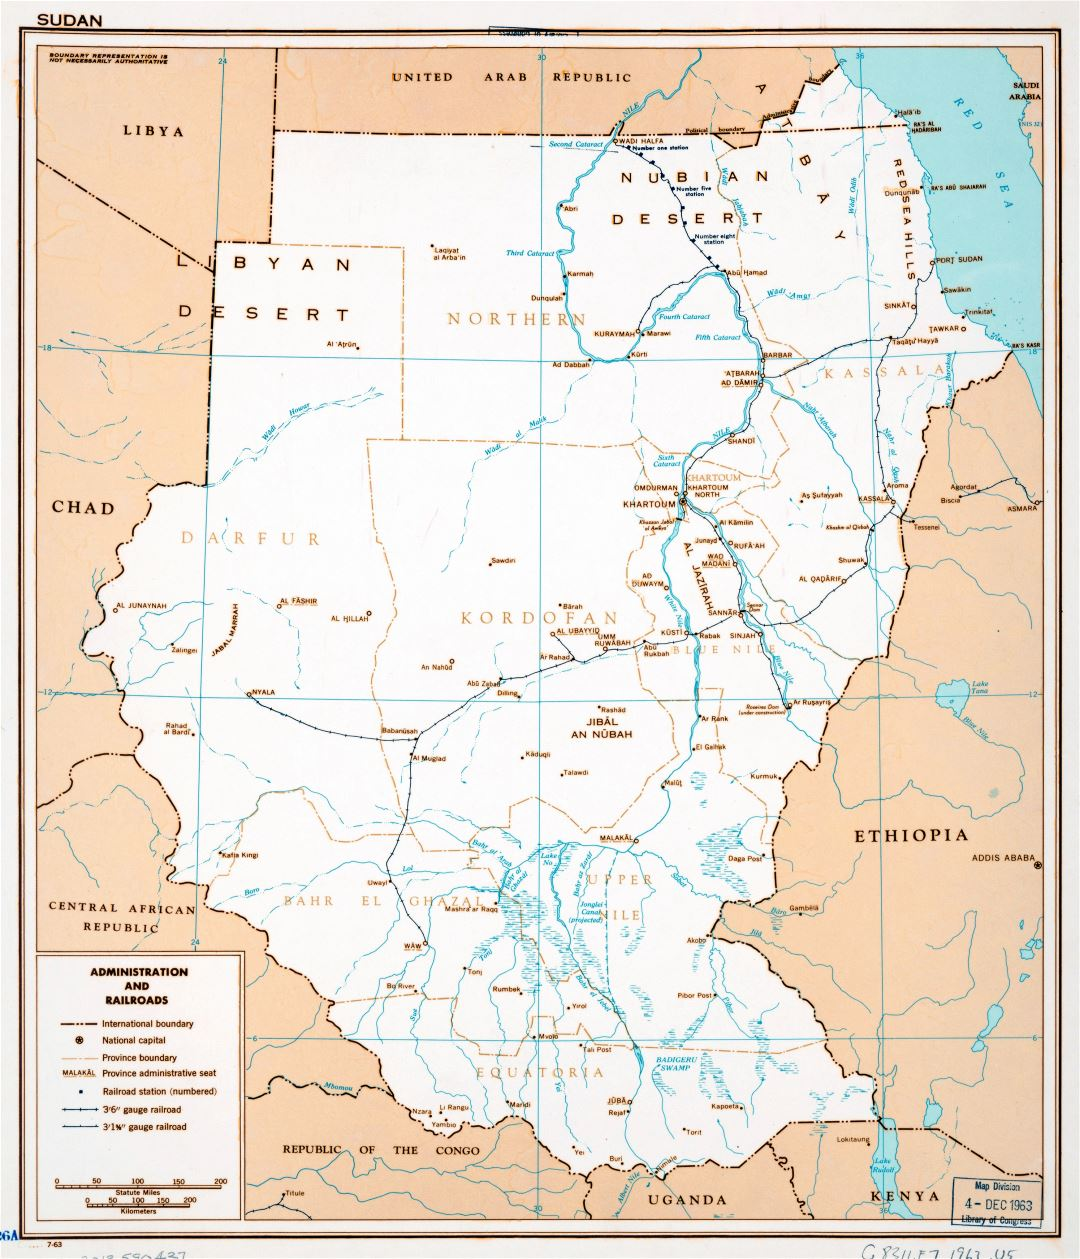 Large detailed administration and railroads map of Sudan - 1963